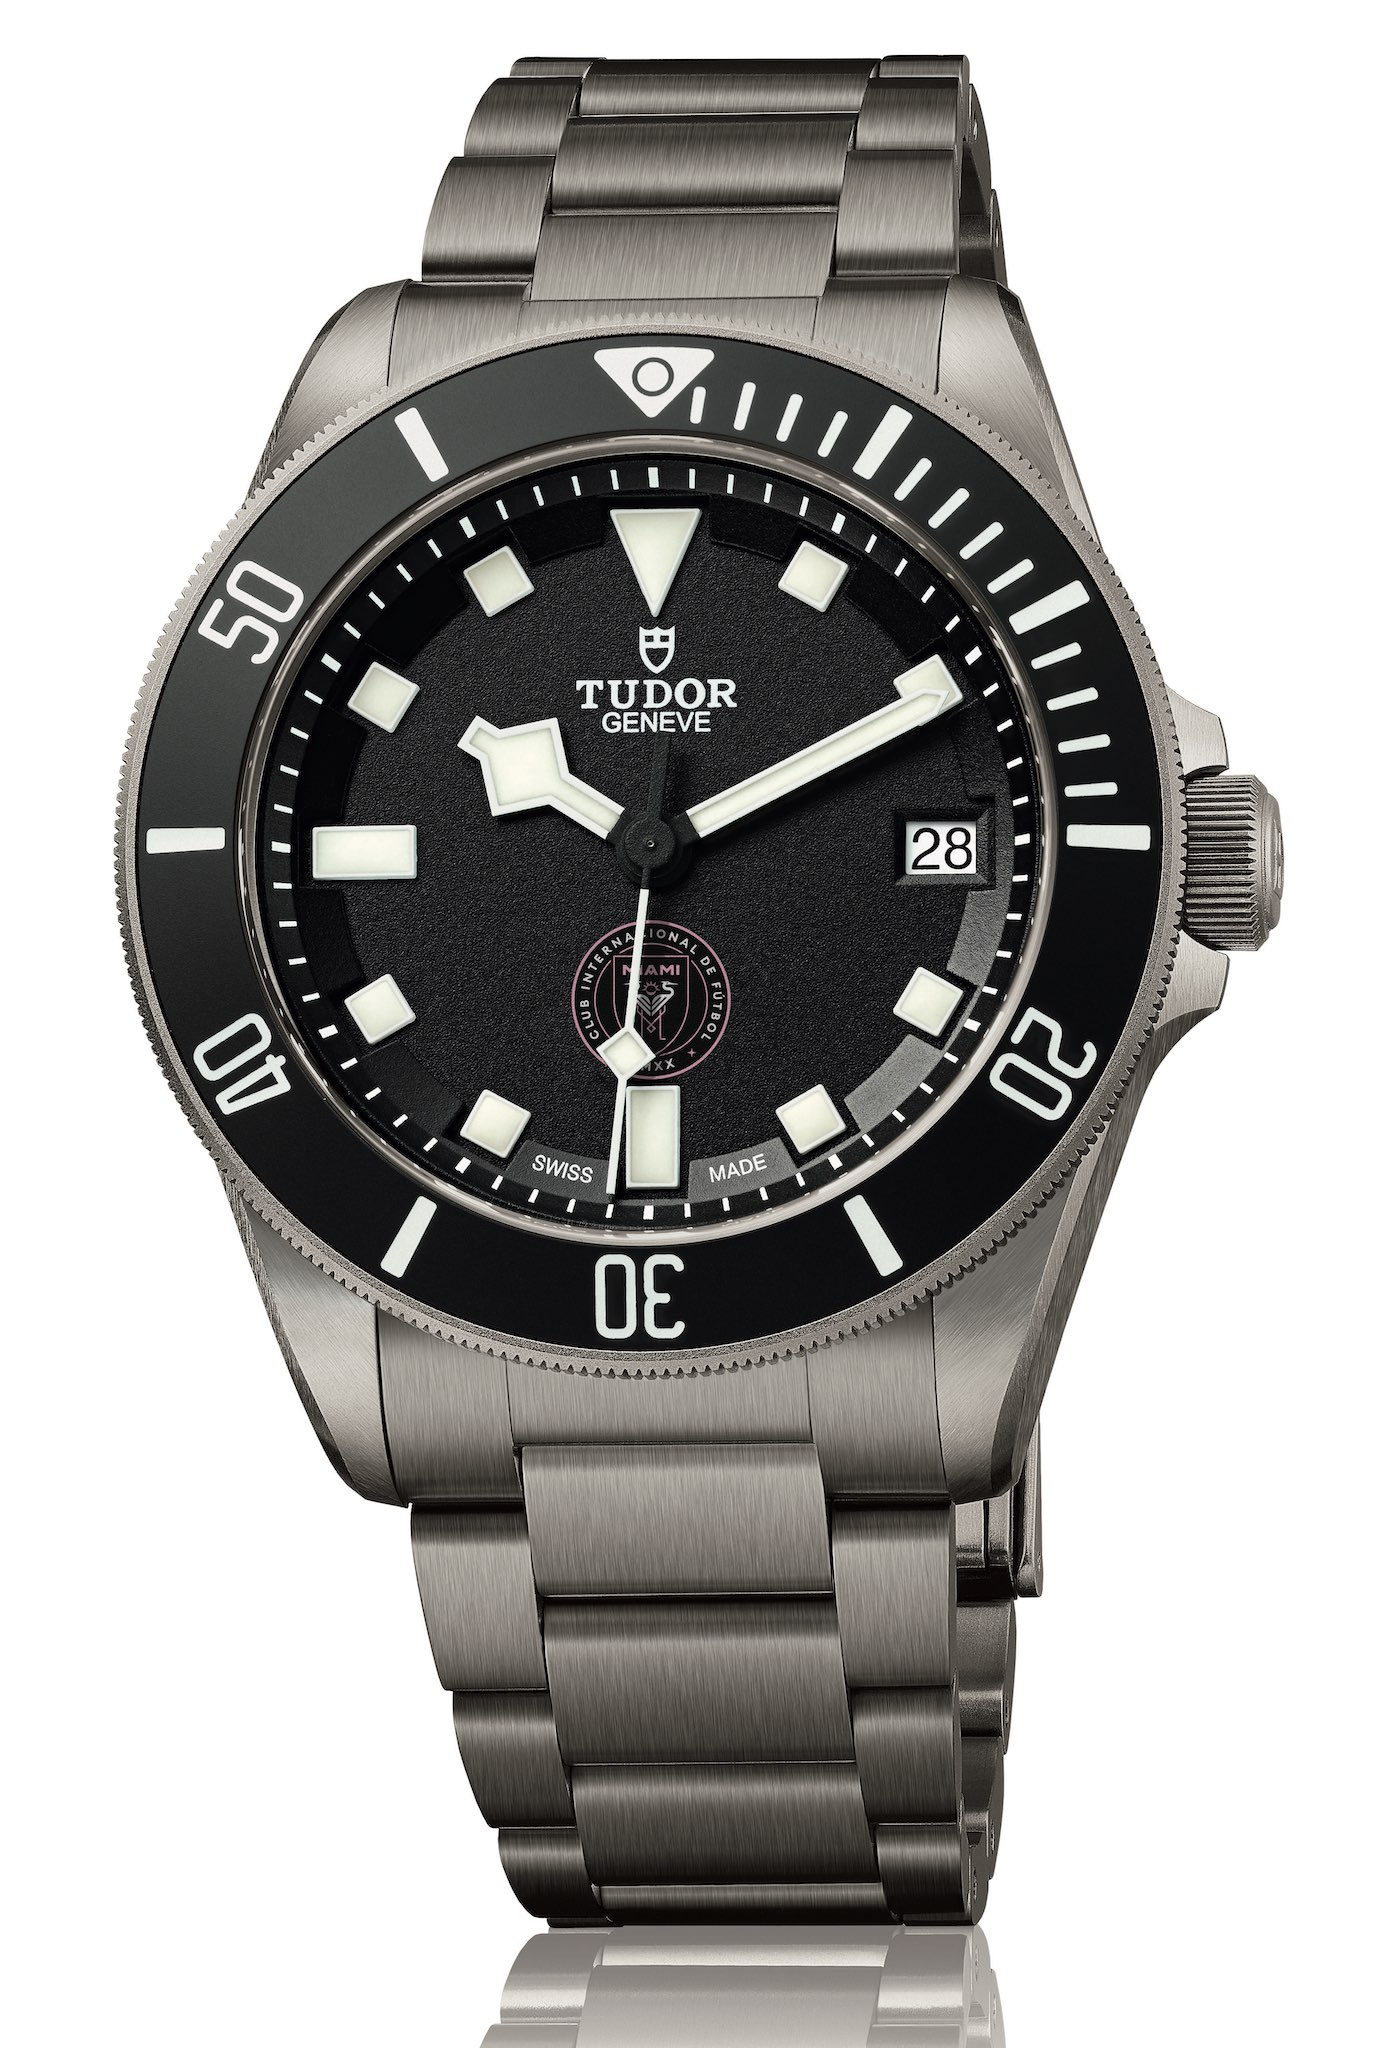 David Beckham Unique Tudor Pelagos Inter Miami